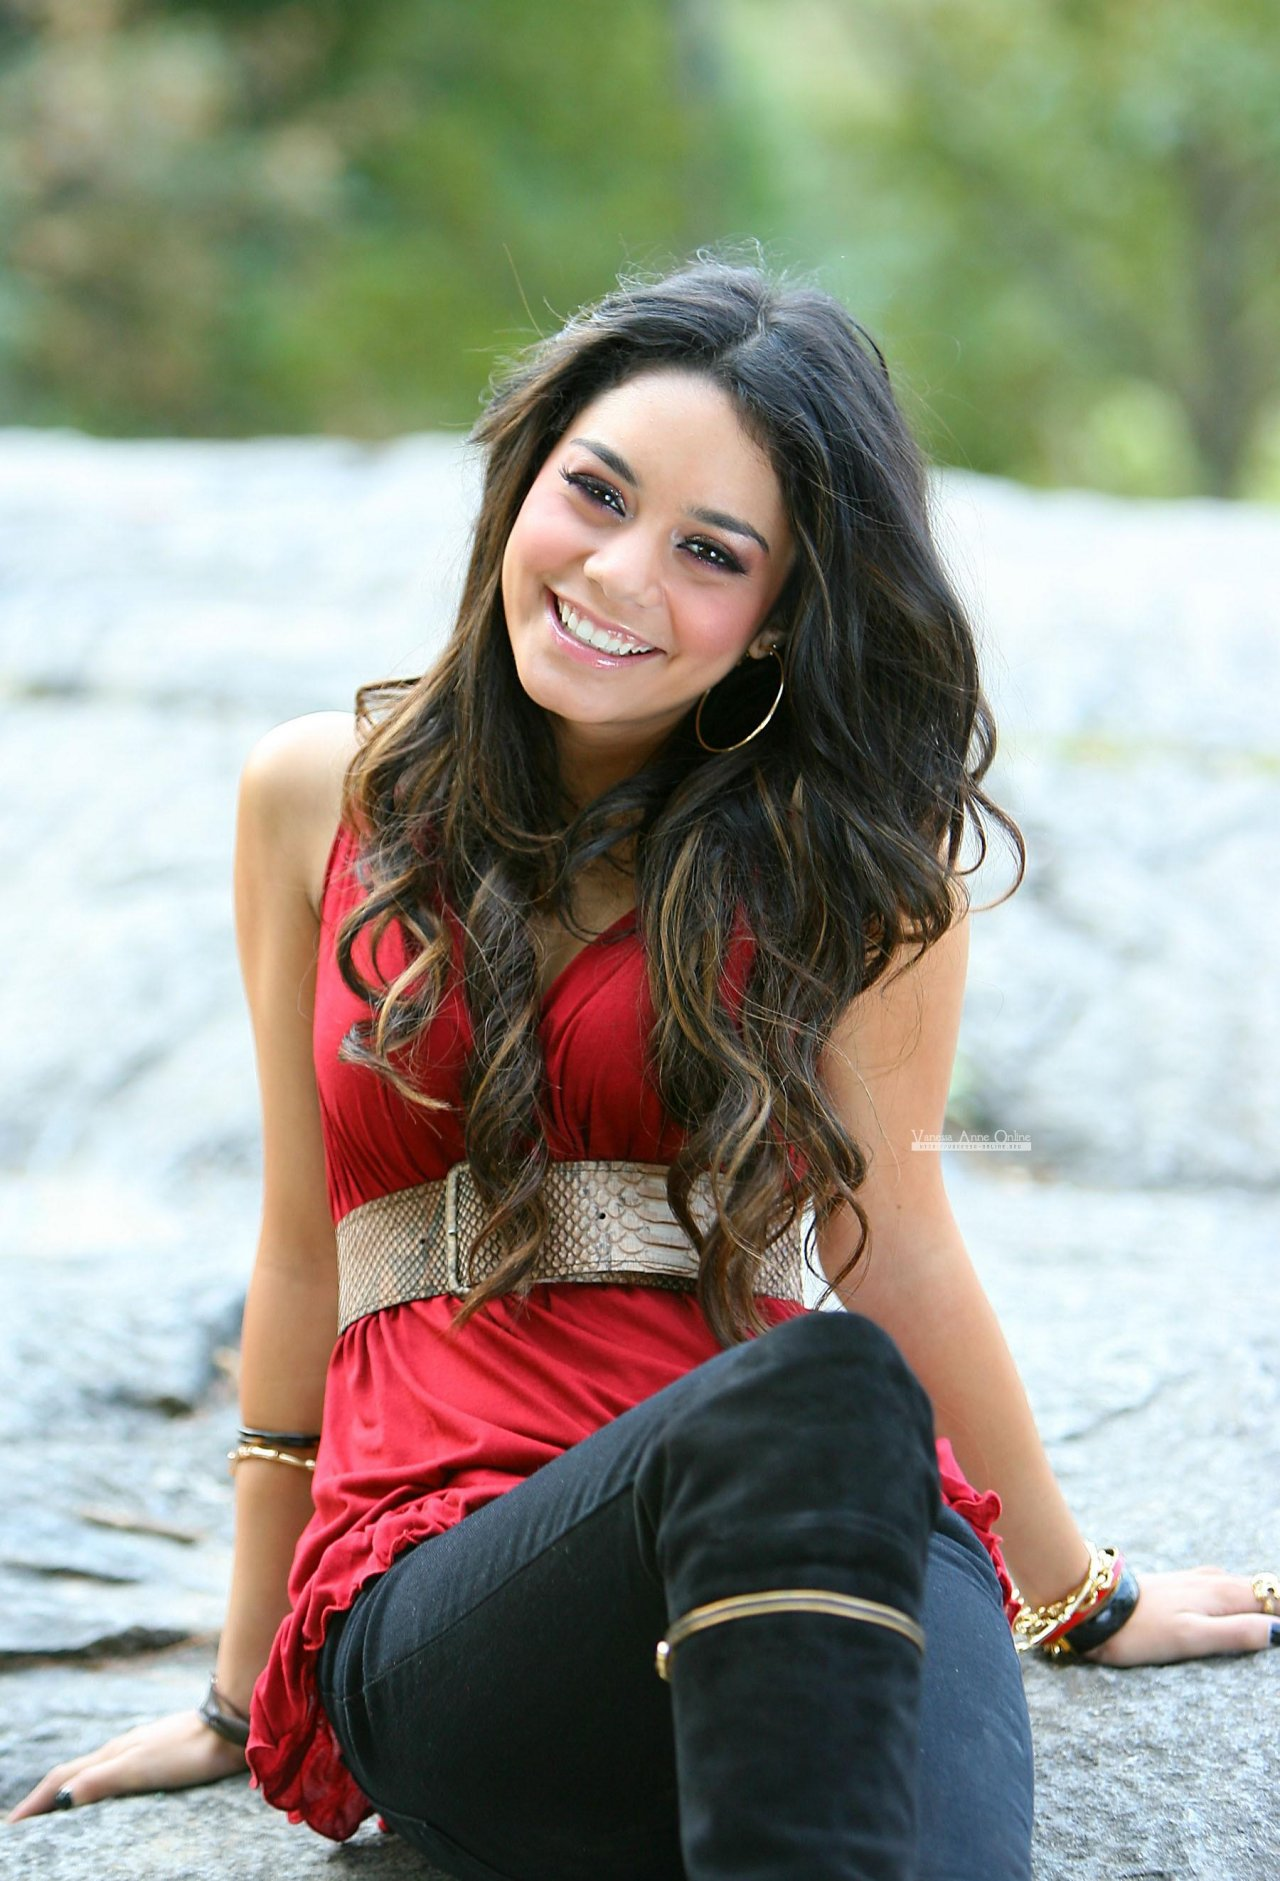 how to get a body like vanessa hudgens